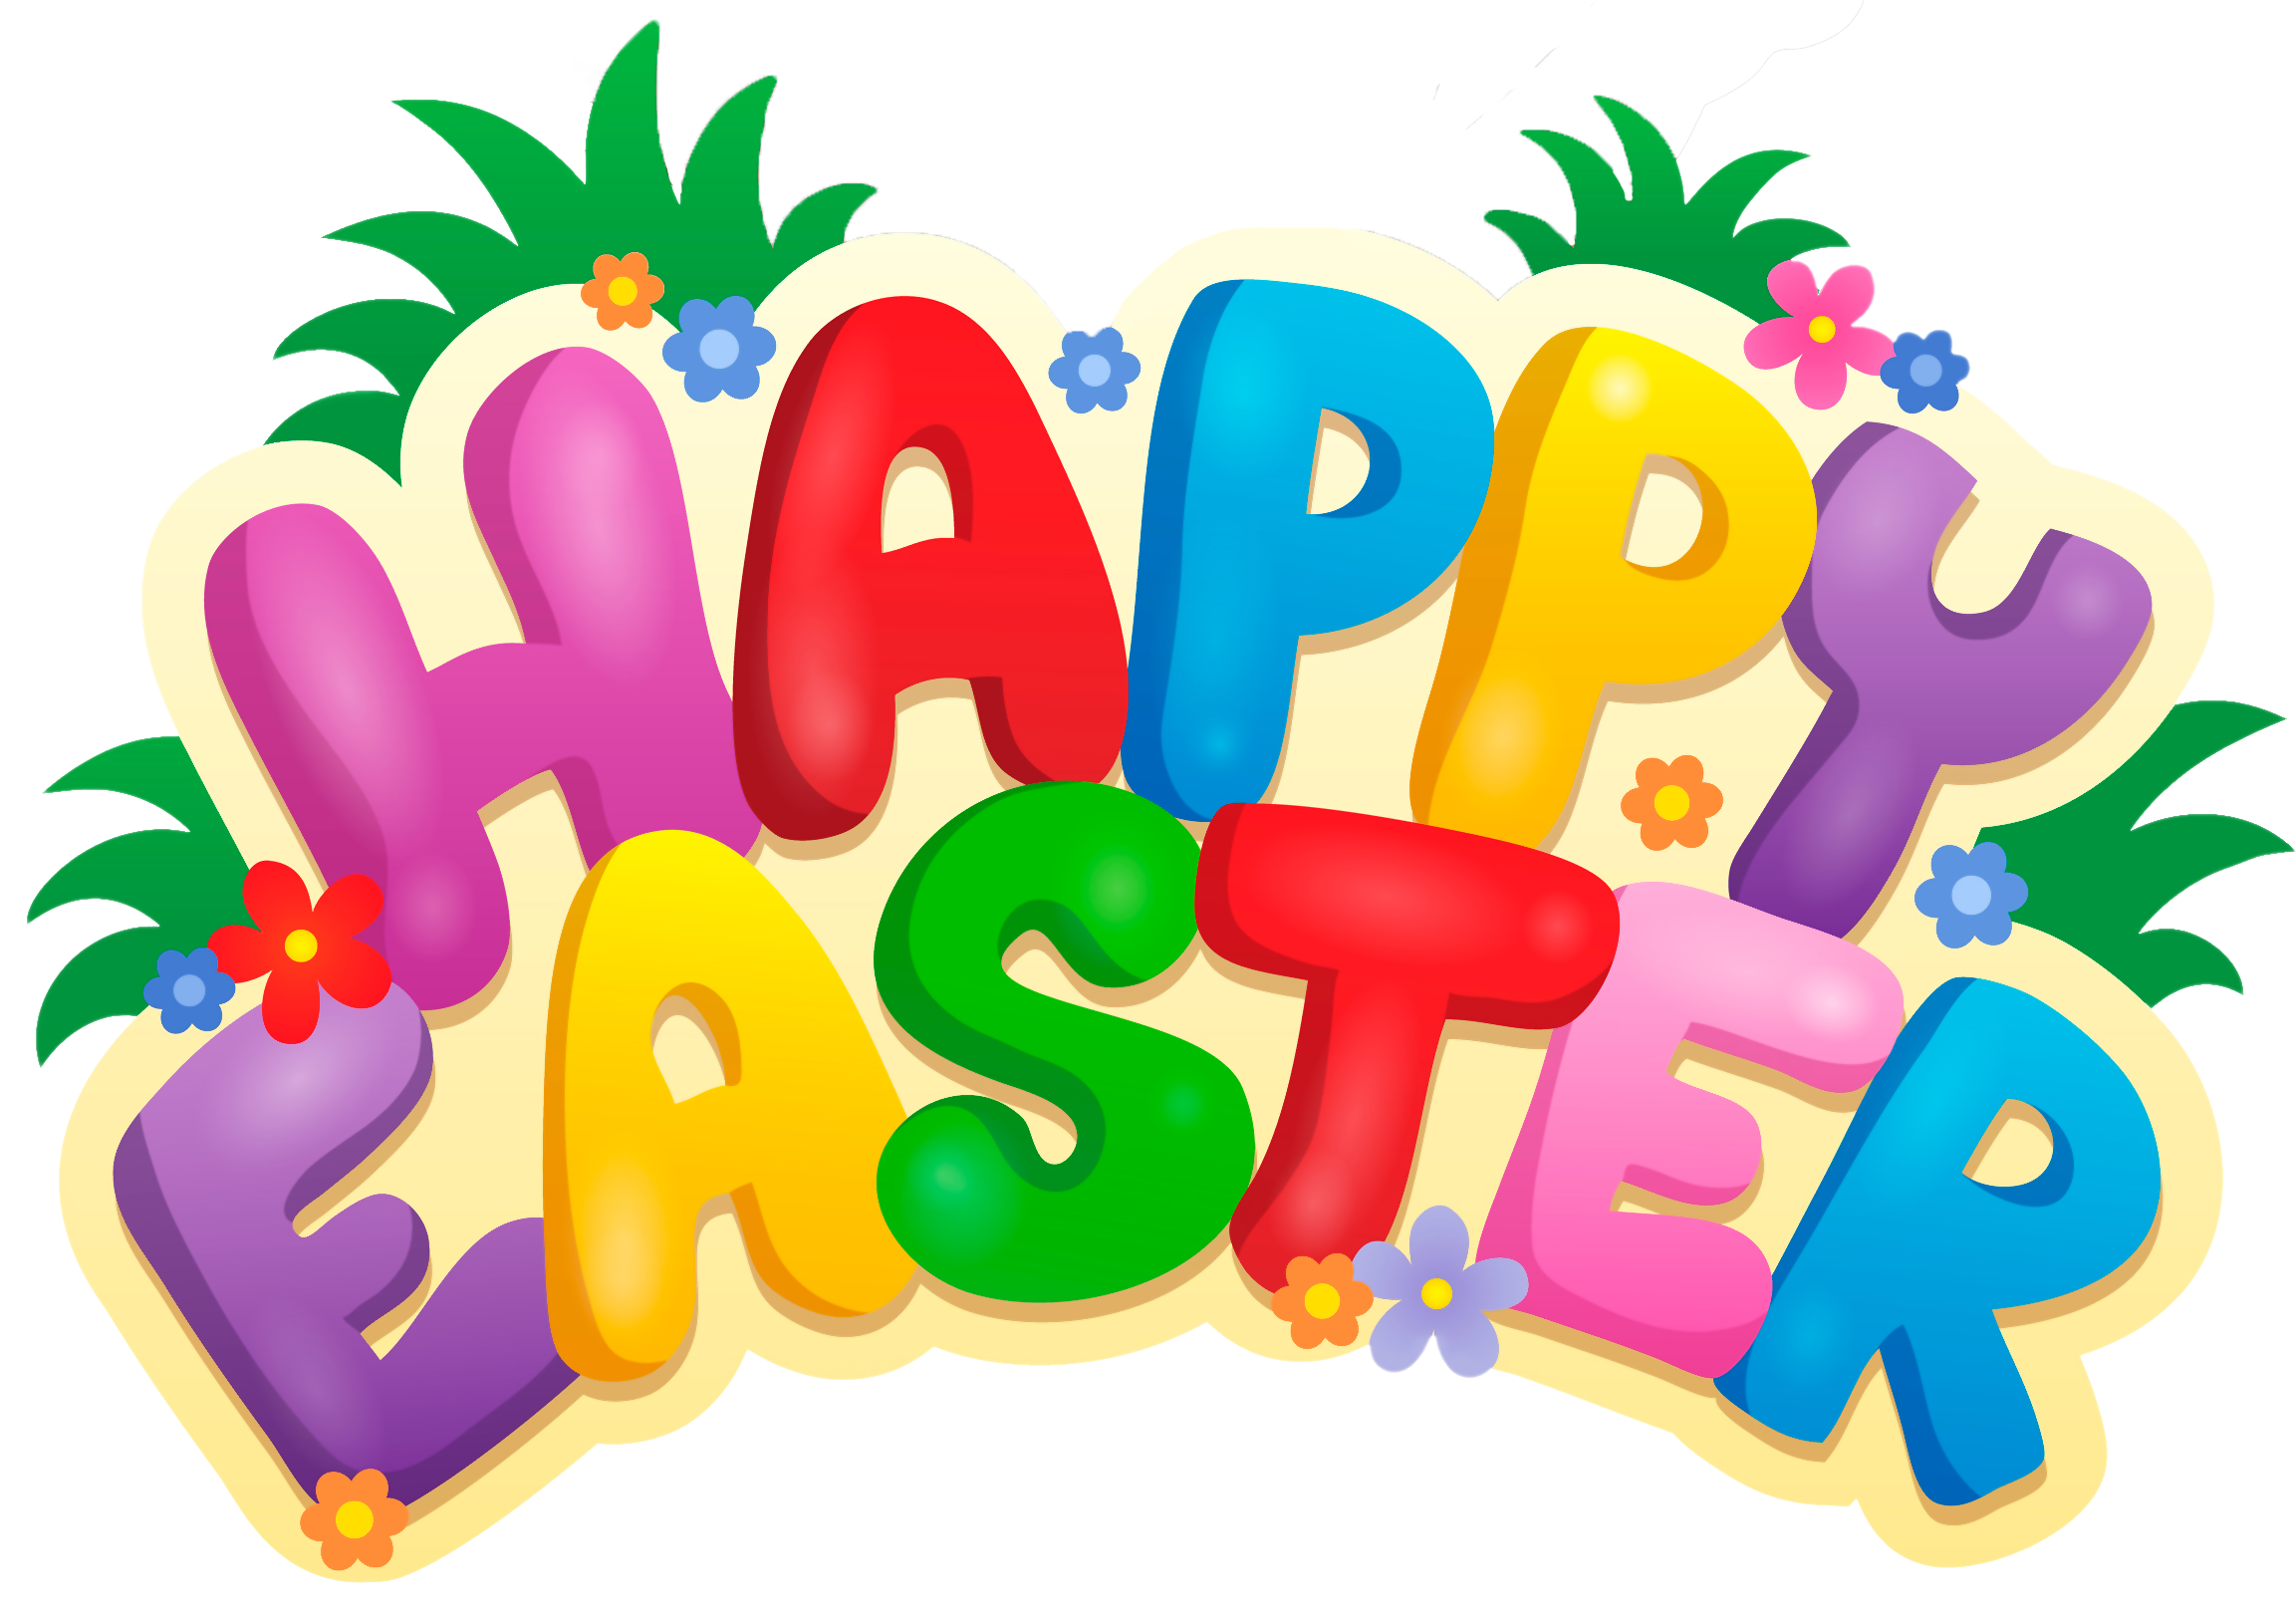 April easter. Sunday png transparent images